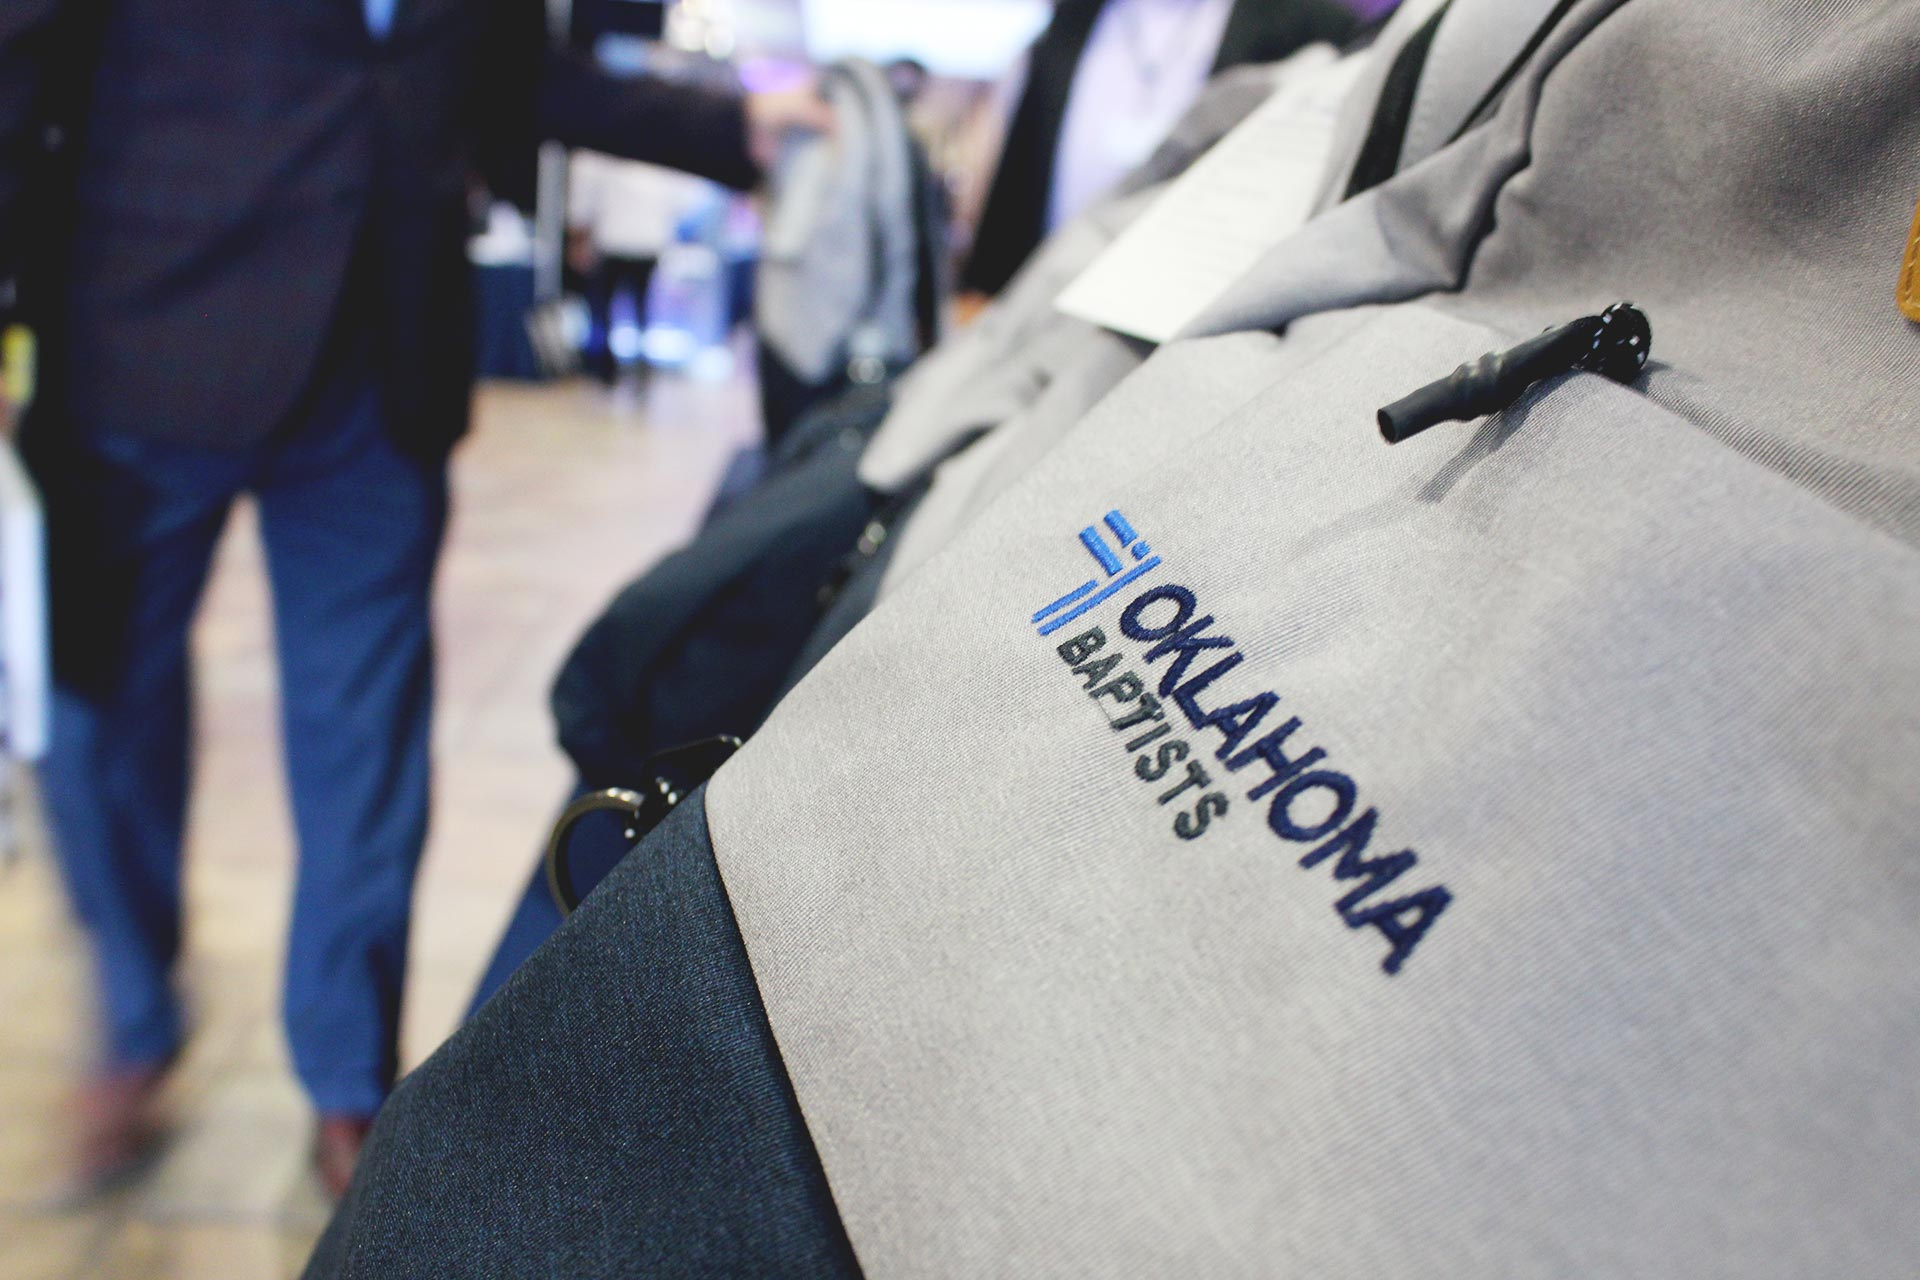 A backpack worn by an attendee of the 2020 Oklahoma Baptists Annual Meeting